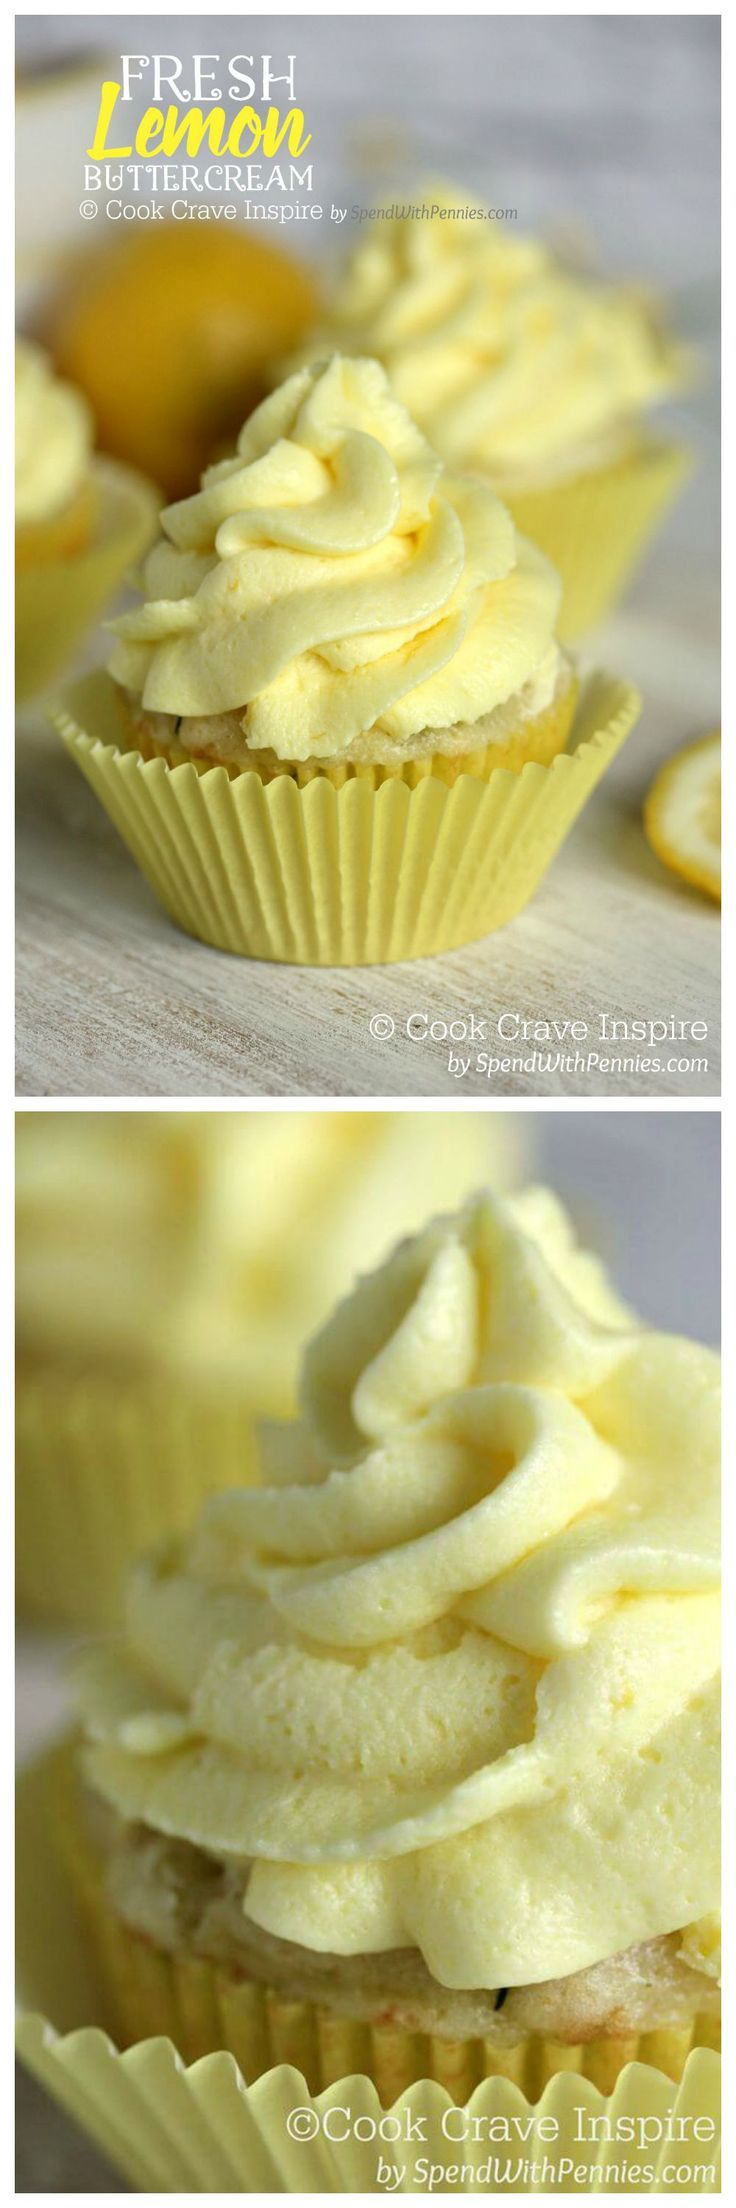 This Fresh Lemon Buttercream is easy to make and results in a deliciously luscious frosting that is light and citrusy. Perfect on cupcakes or banana cake!